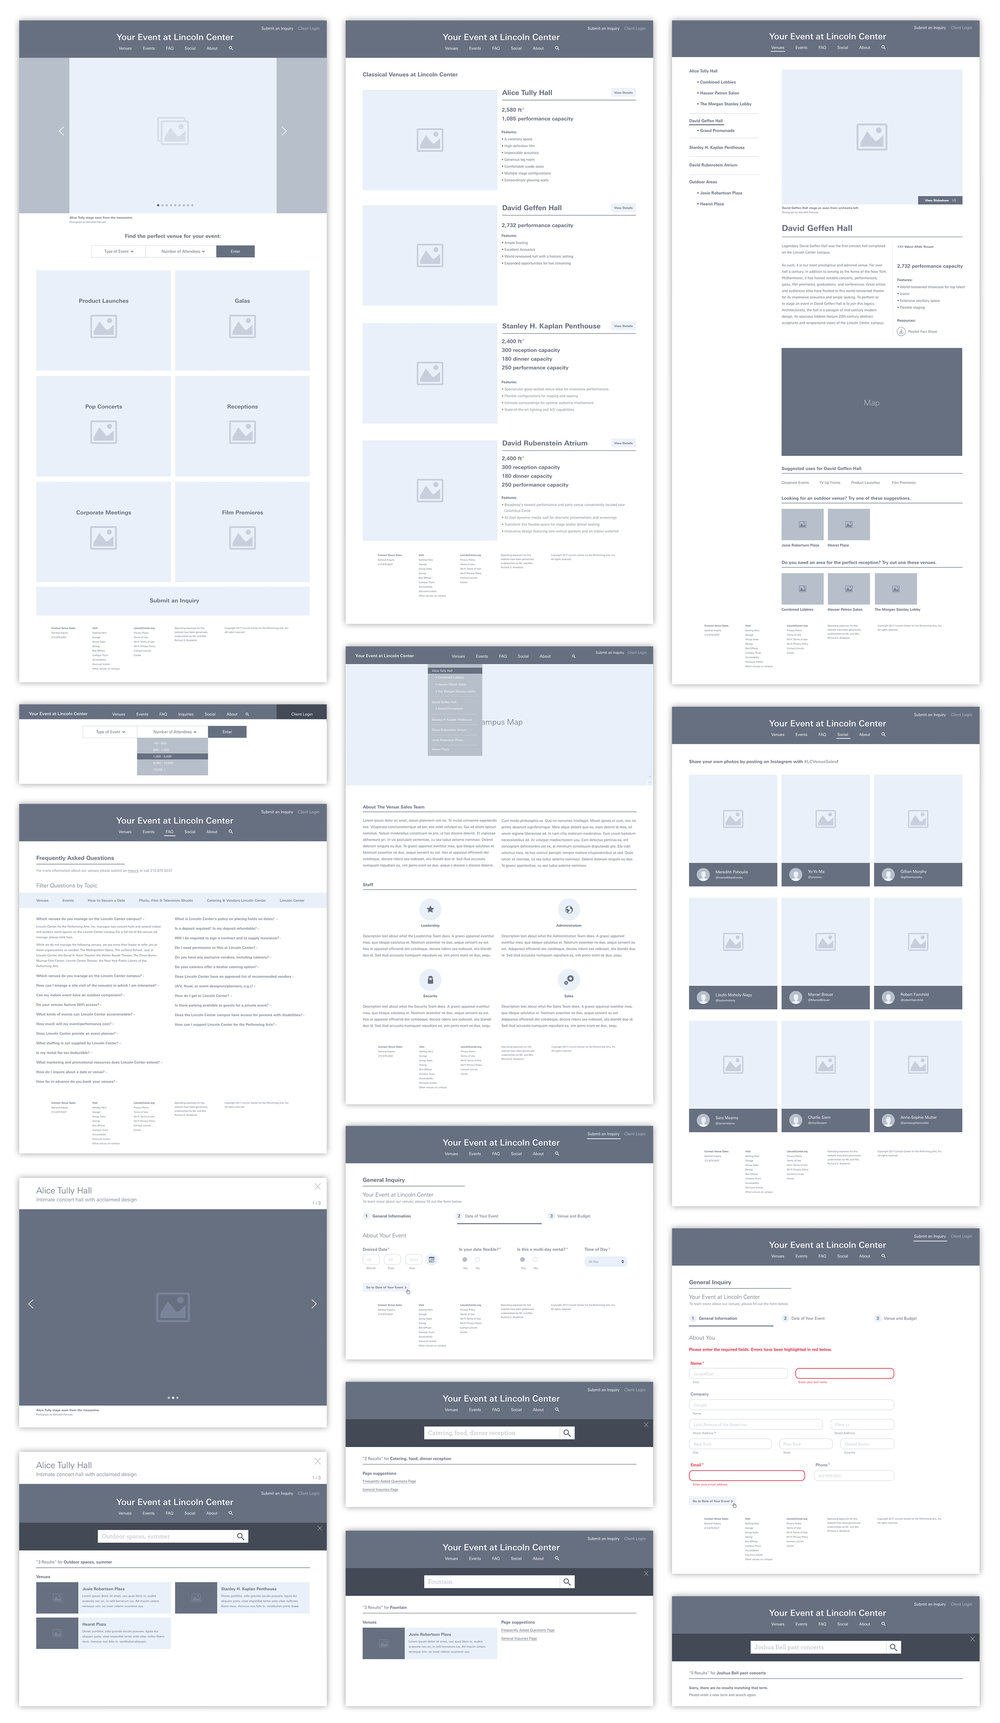 venue-sales-wireframes-selected.jpg